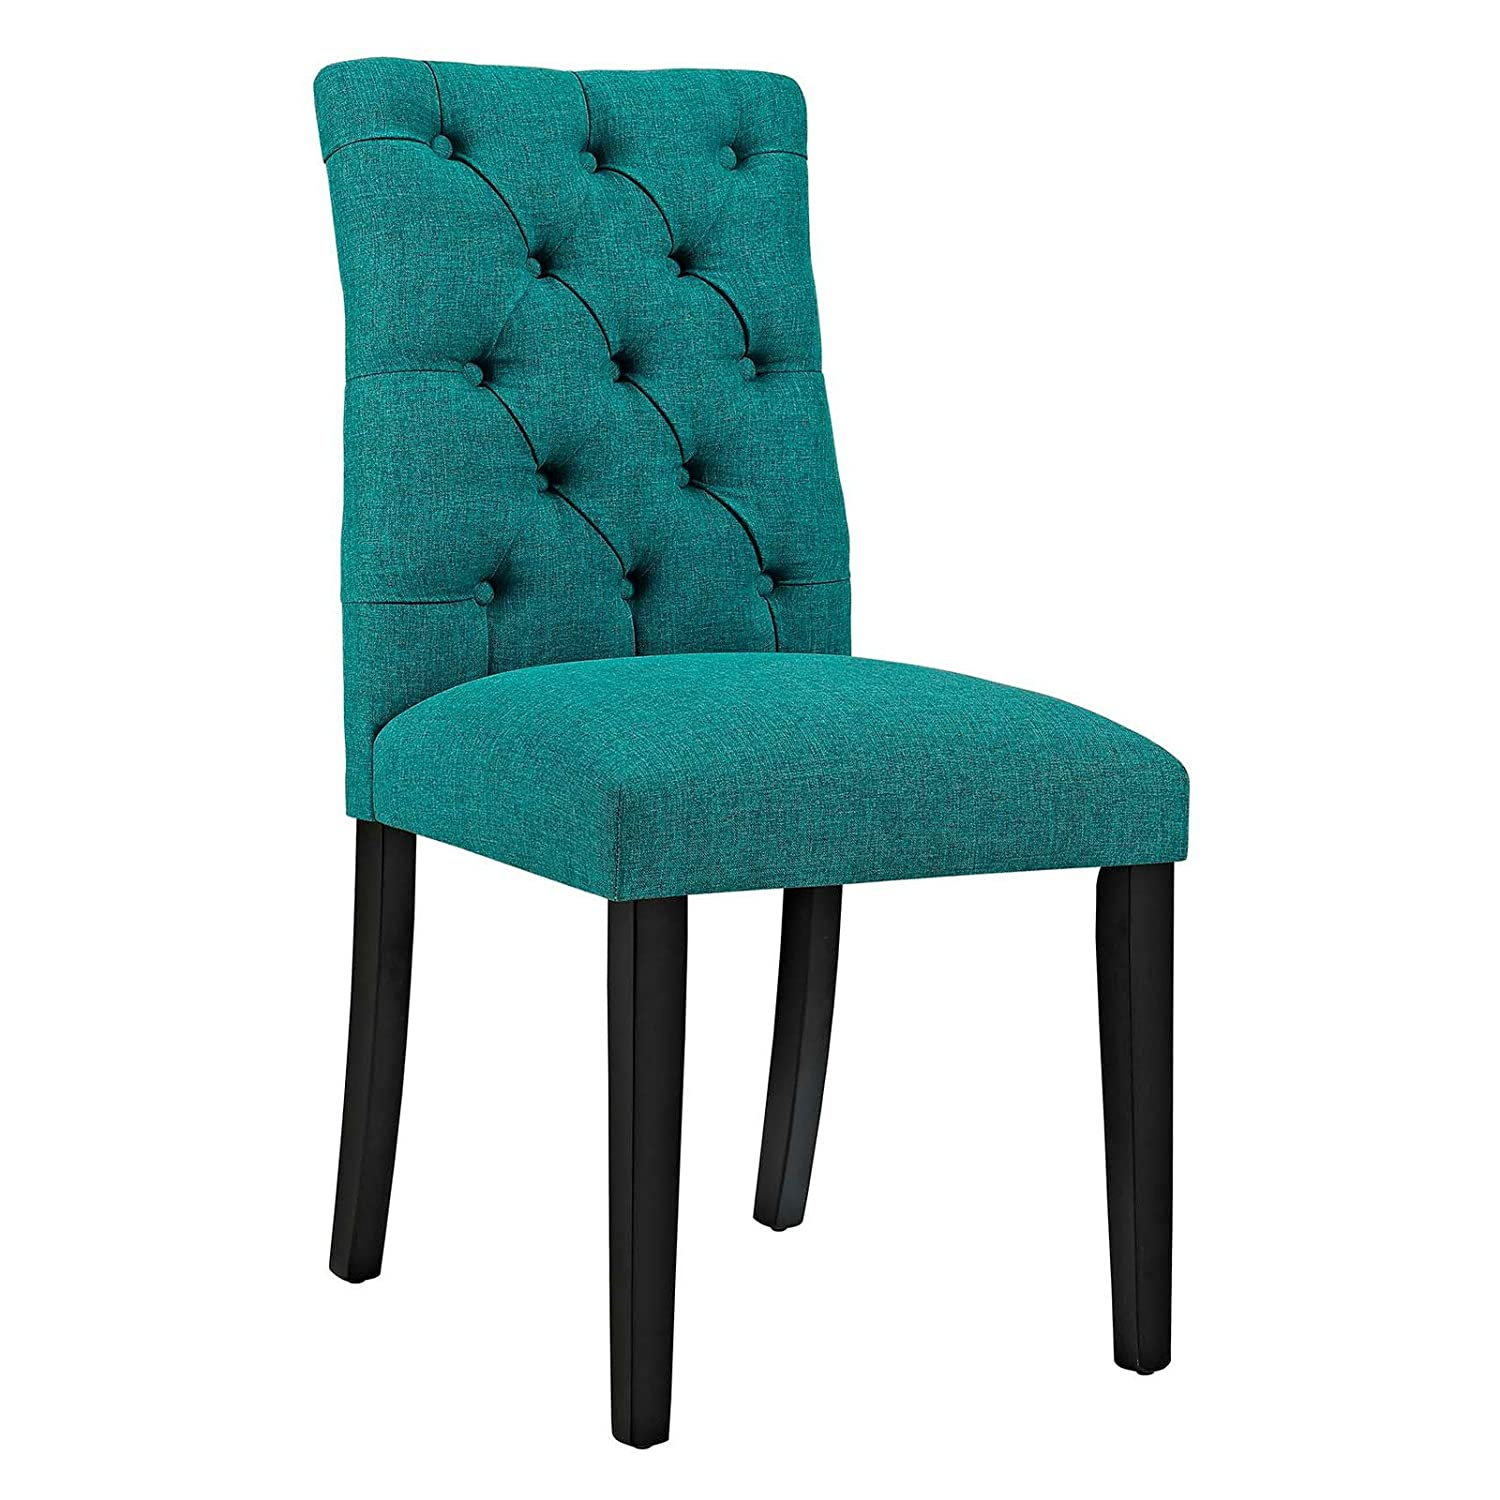 Sophisticated upholstered dining chair with tufted back dense foam padding solid rubberwood legs non marking foot caps made of wood and polyester